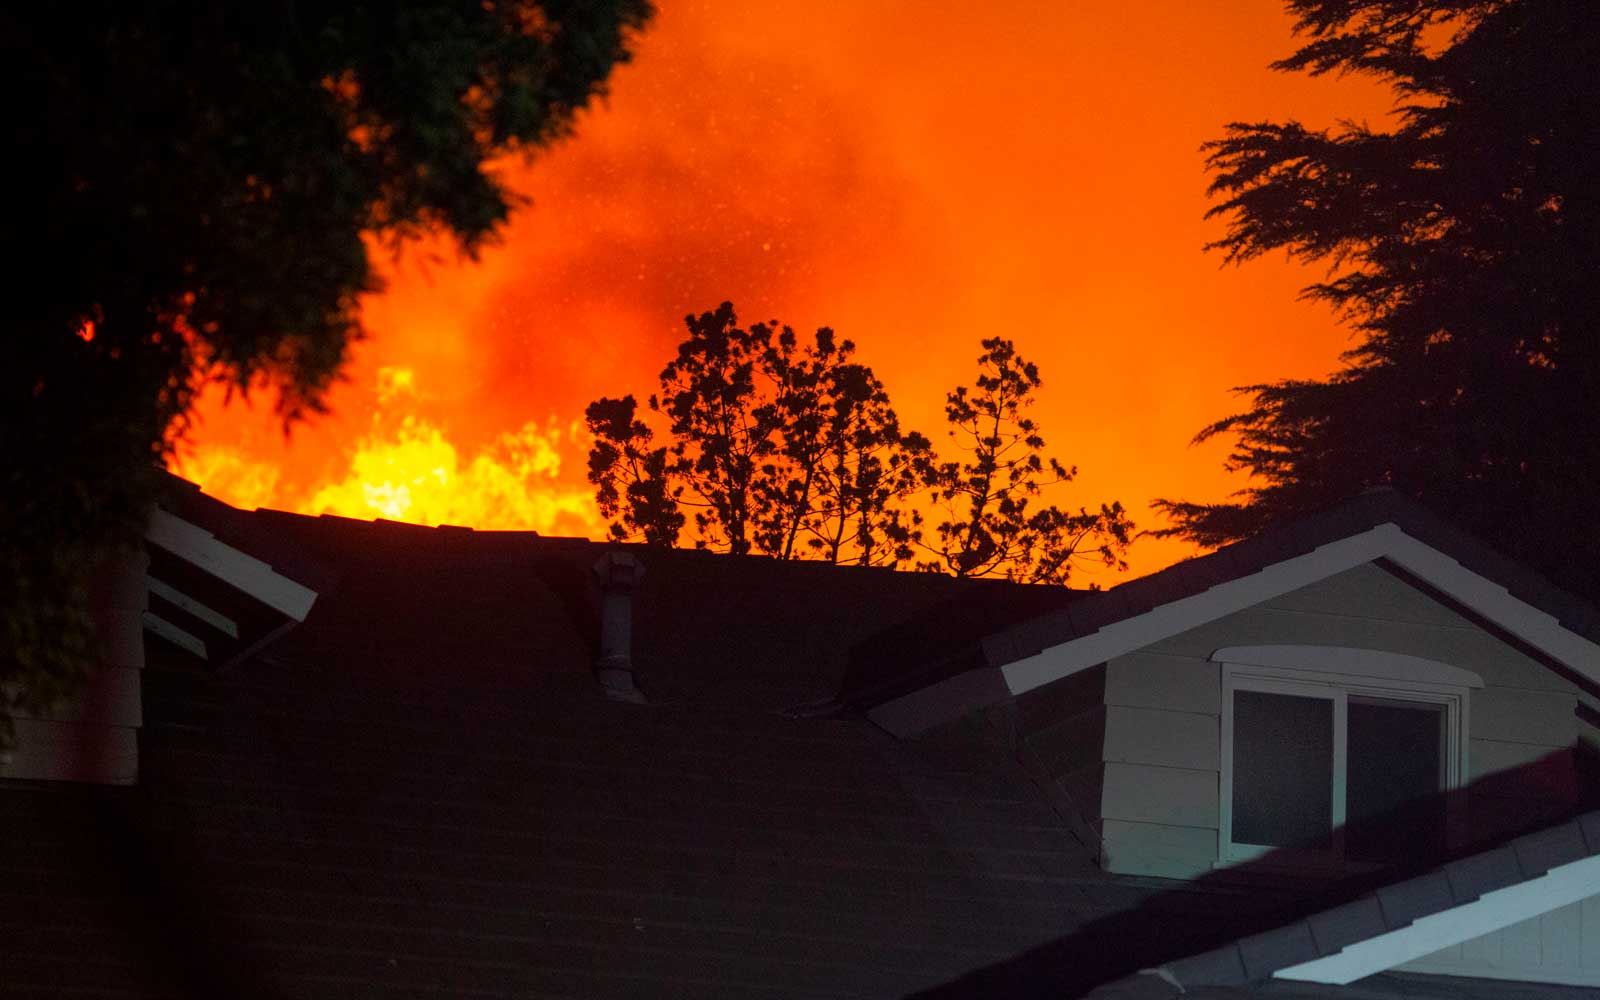 Massive fire in Los Angeles forces highway closures, thousands of evacuations